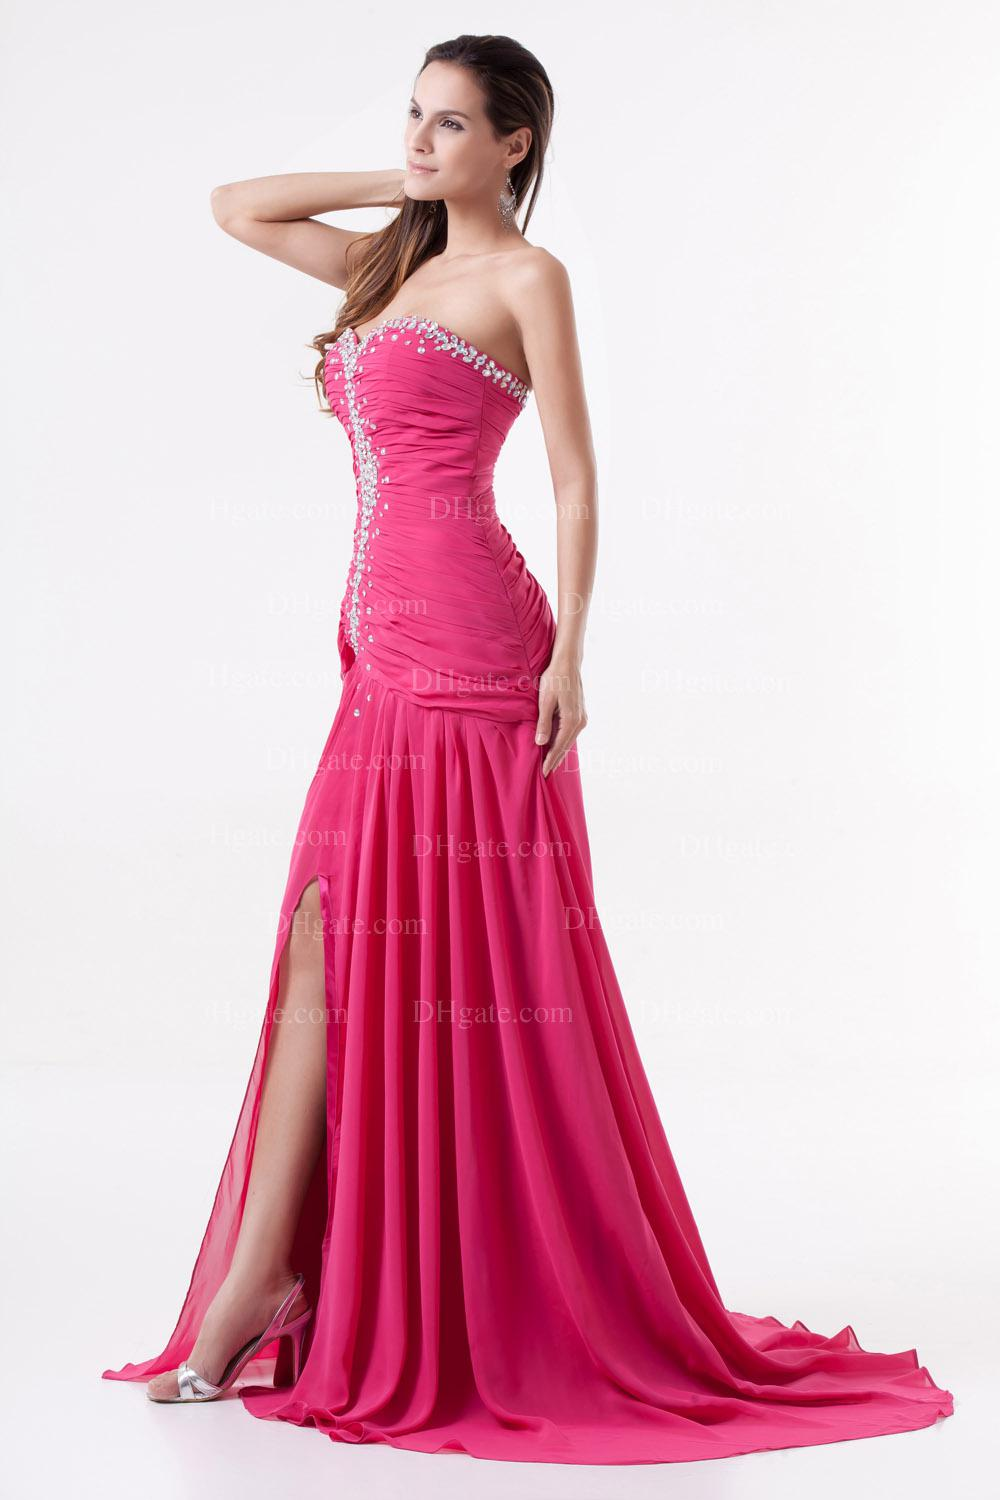 Evening Dresses For Rent - Page 245 of 513 - Party Dresses Boutiques